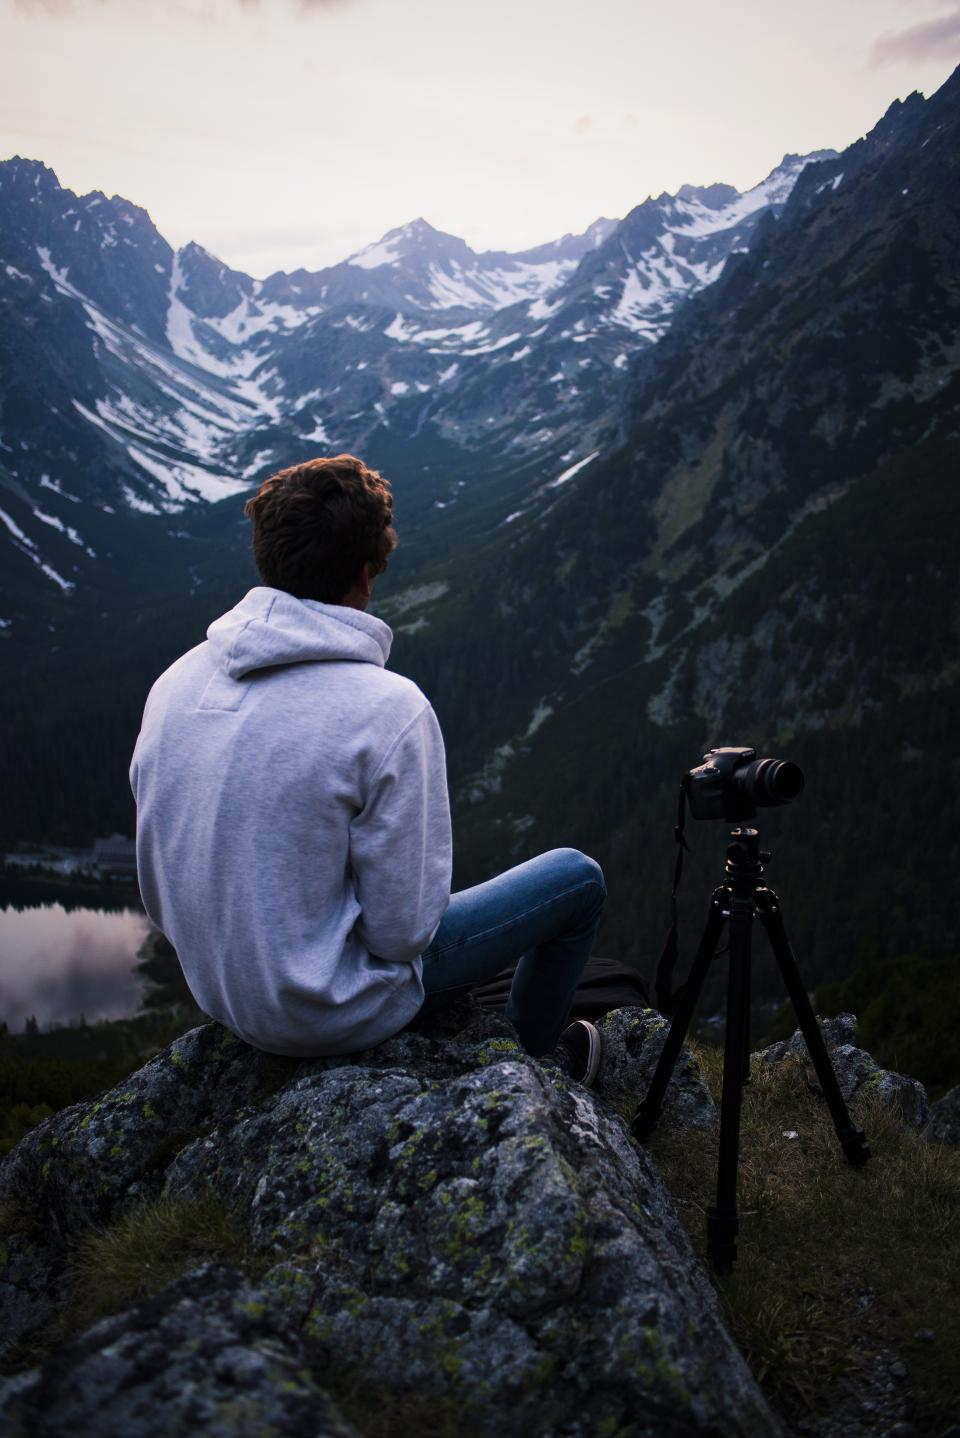 guy man male people back contemplate nature mountains rocks snow travel trek hike climb summit peaks fog vegetation grass trees rocks sky horizon water lake sea reflection tripod dslr camera photography